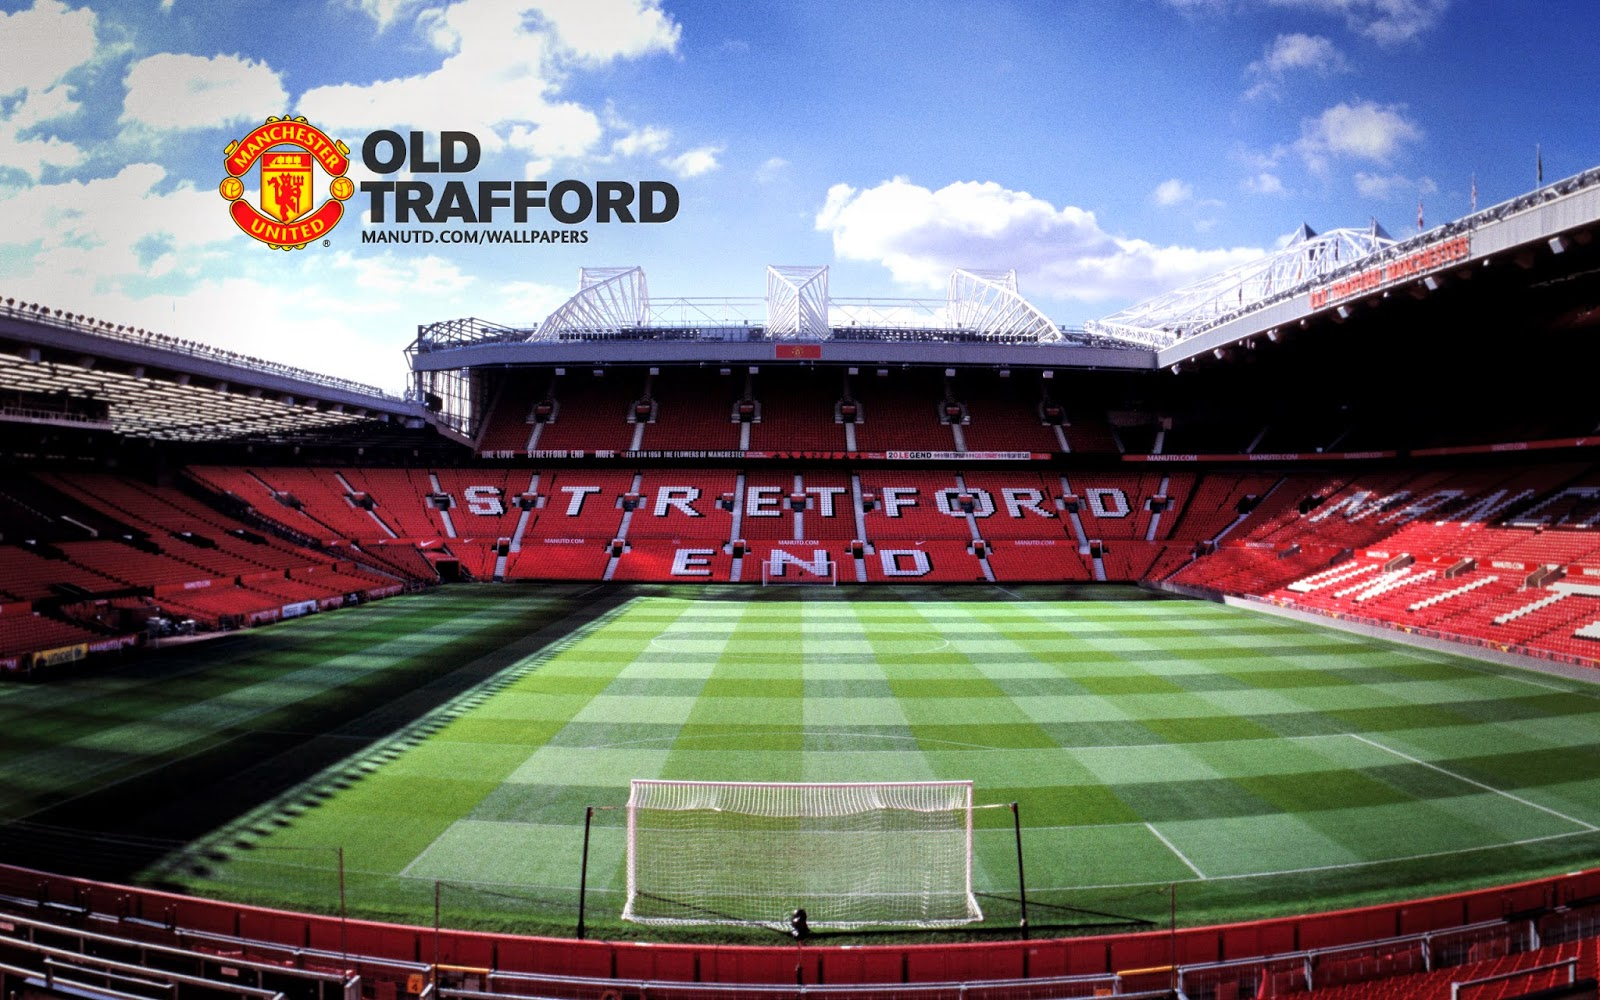 Old, Trafford, Old Trafford, Manchester, United, Manchester United, London, England